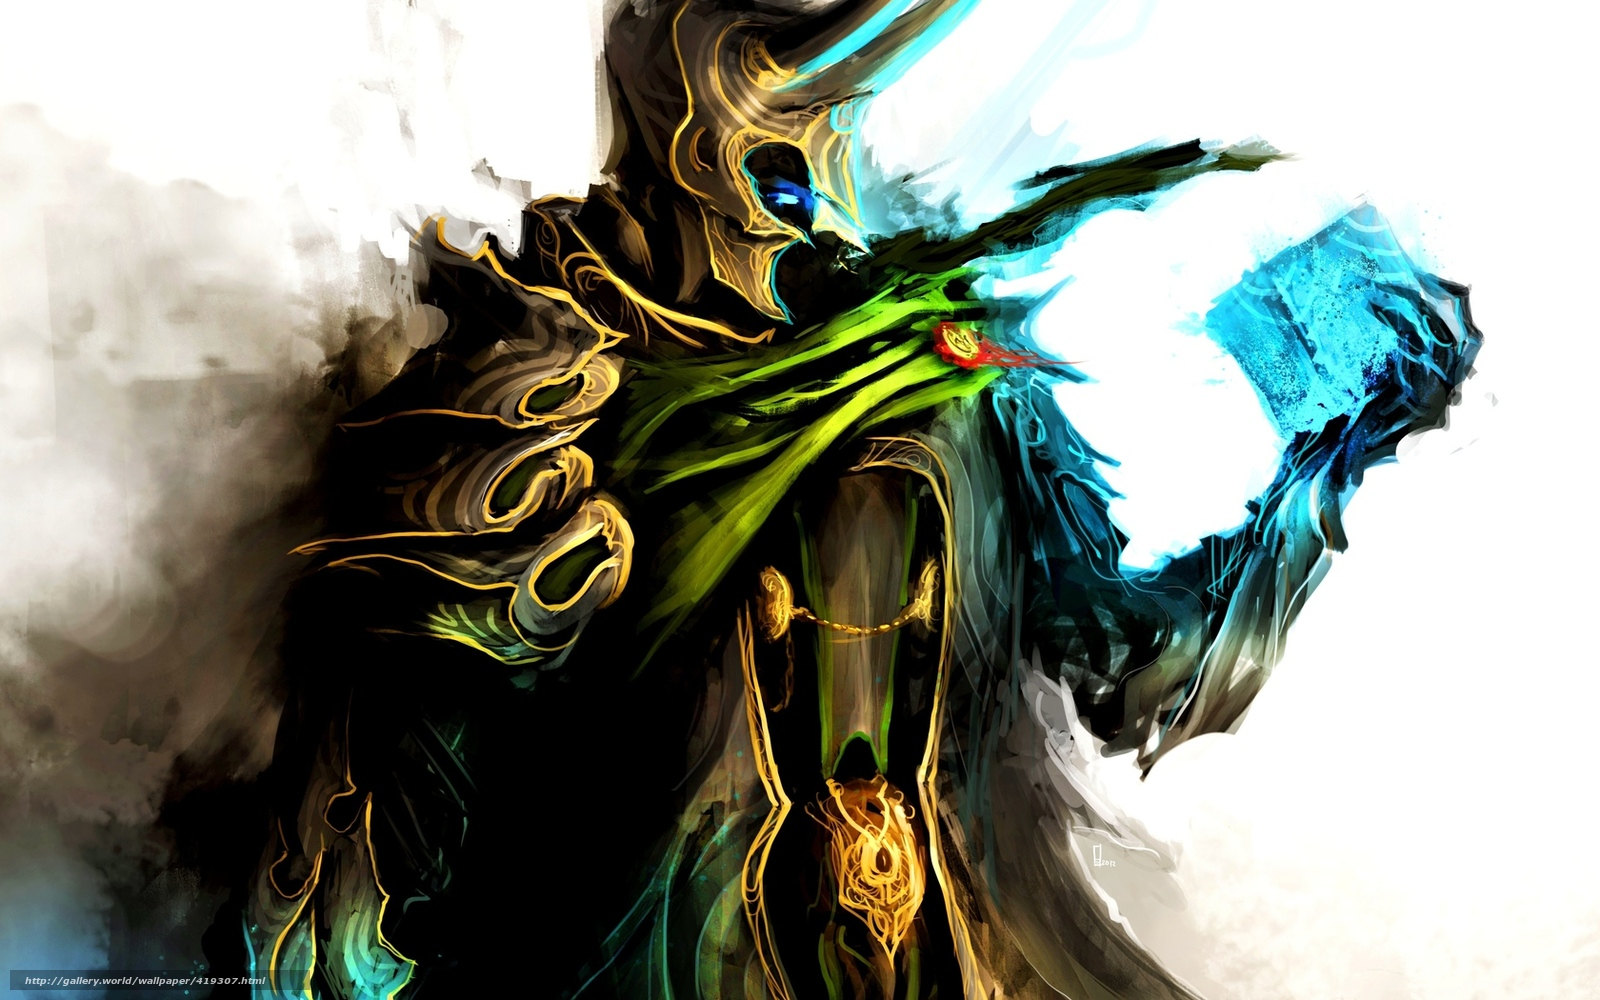 Loki Avengers Wallpaper Images Pictures   Becuo 1600x1000